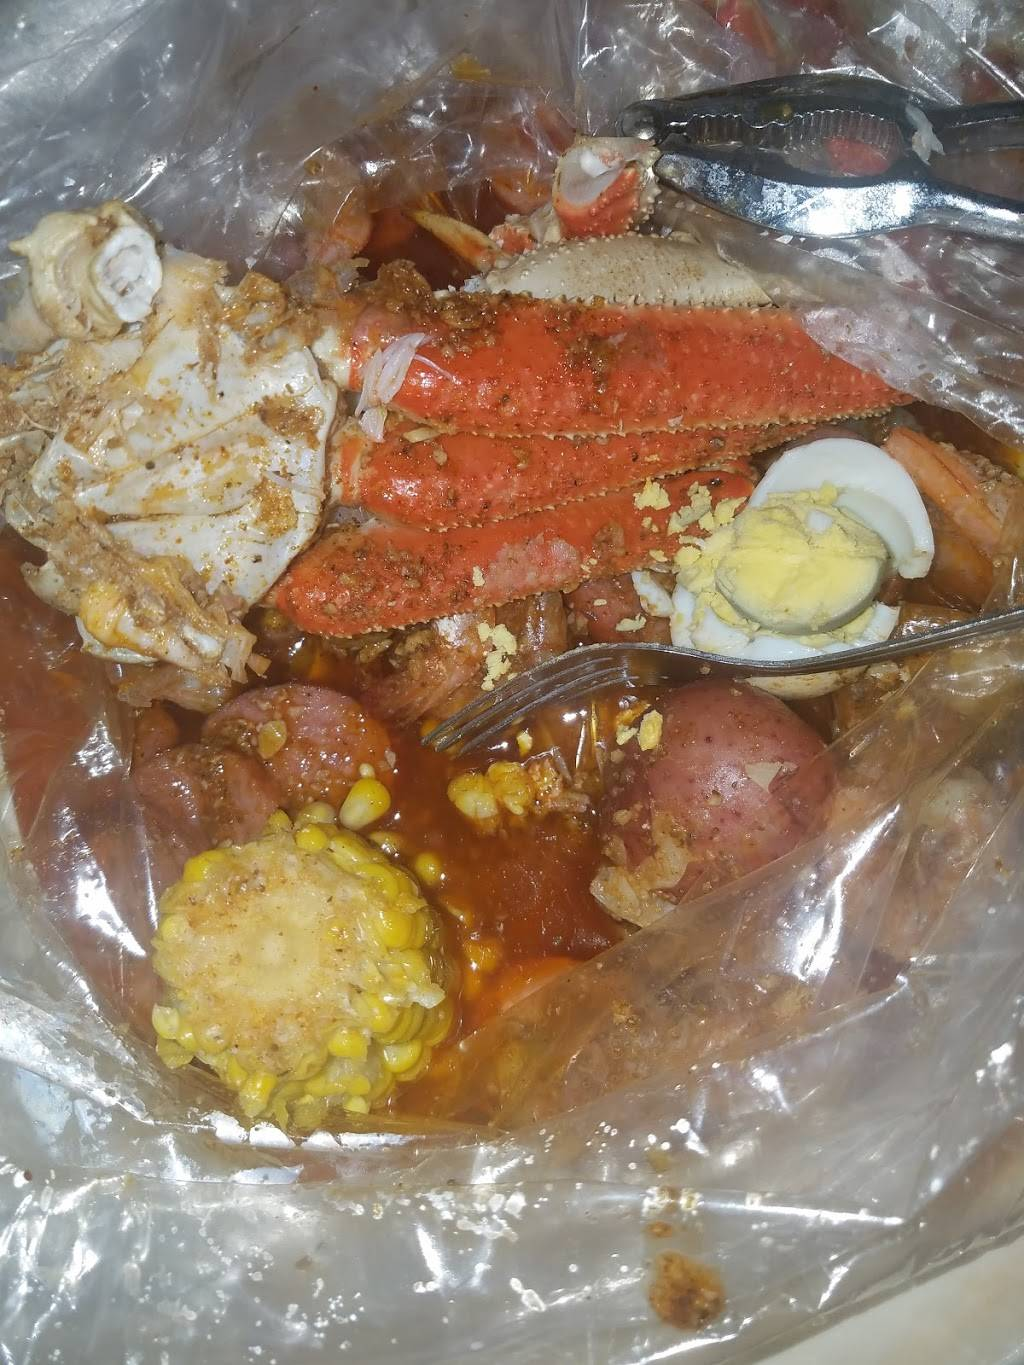 Pier 11 Boiling Seafood & Bar | restaurant | Whitehall, OH 43213, USA | 6148171007 OR +1 614-817-1007